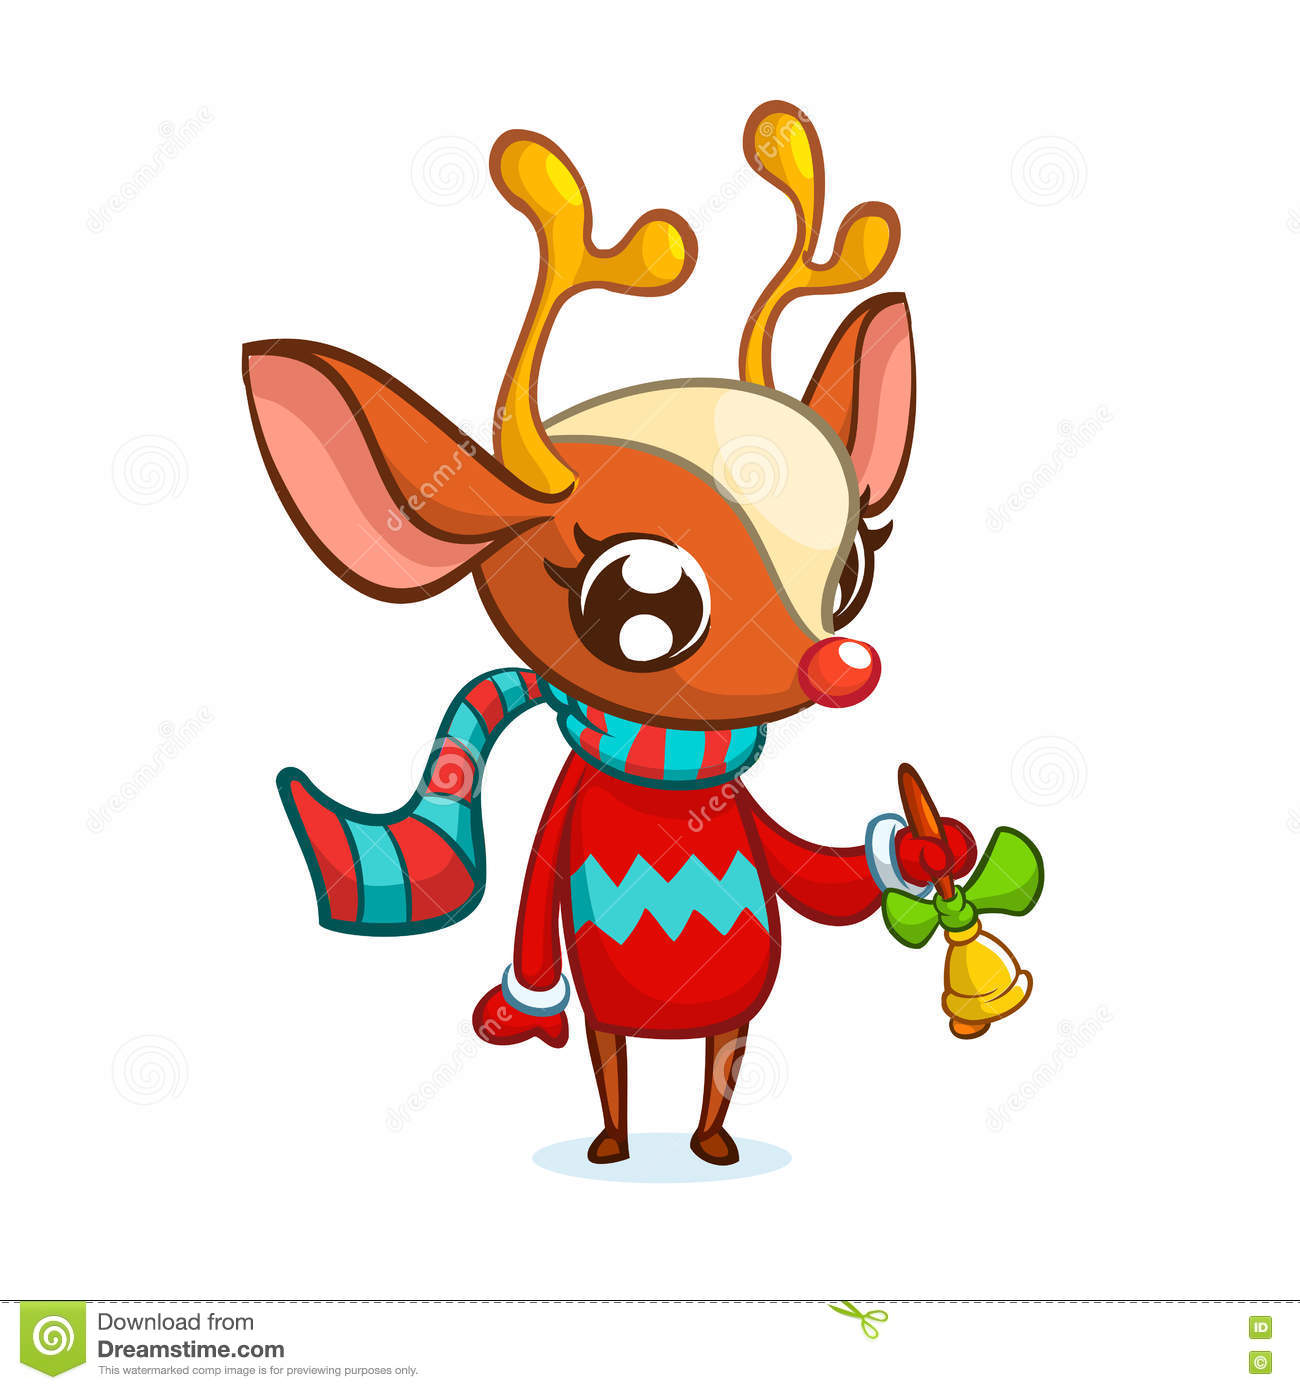 9300bd08b5664 Christmas reindeer in Santa hat ringing a bell. Vector illustration  isolated.